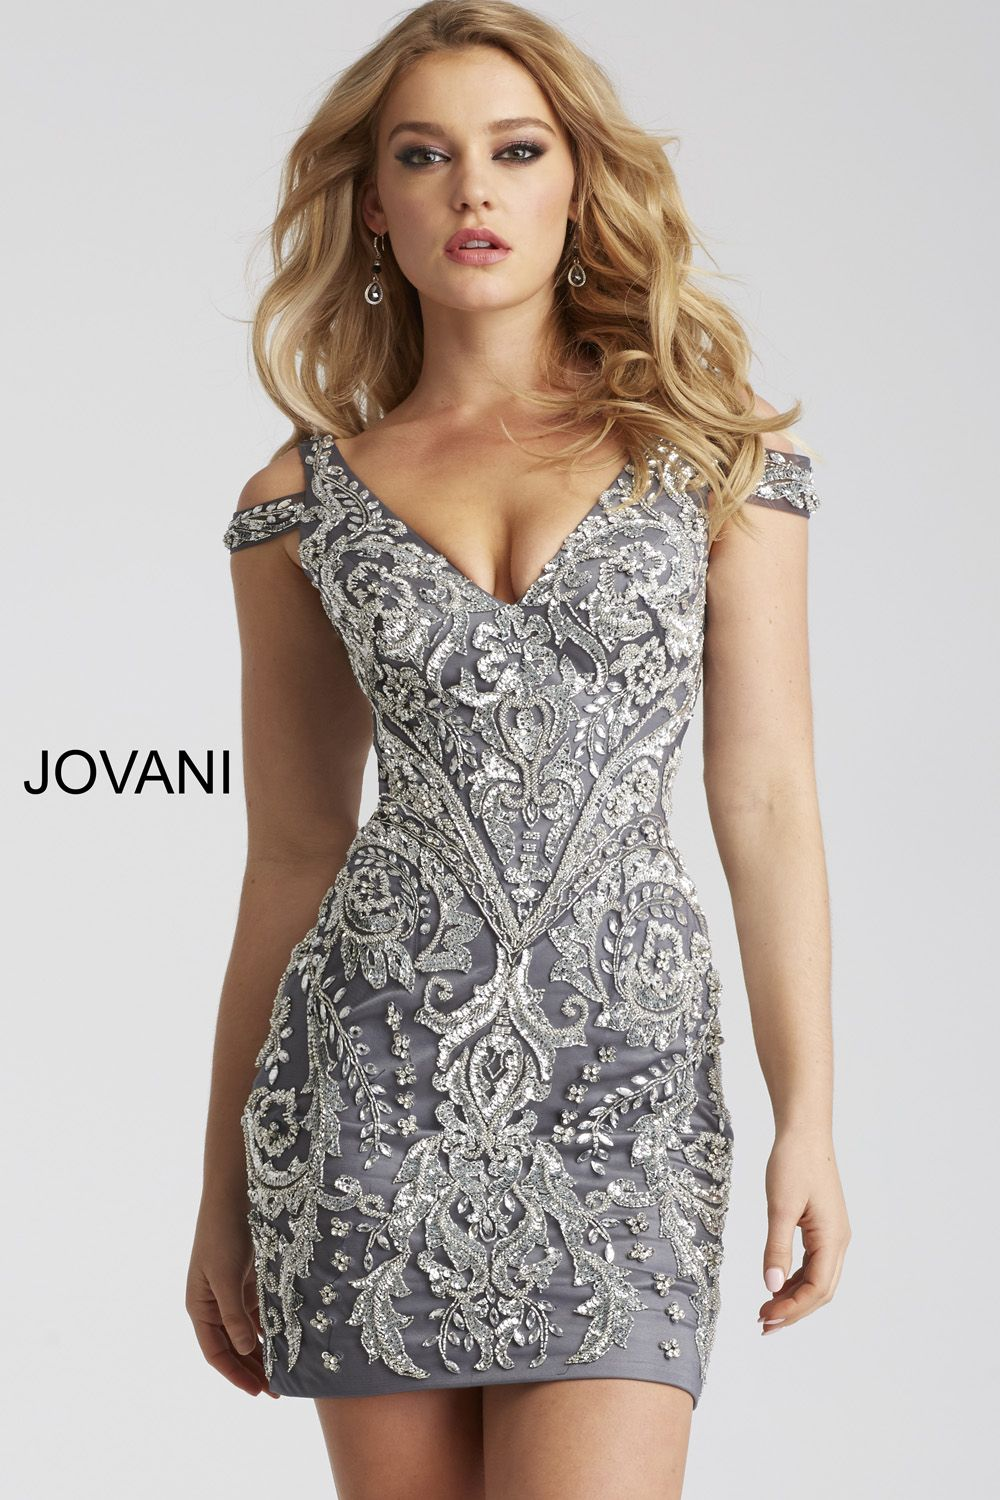 Jovani 54546 | Prom, Prom dress stores and Formal